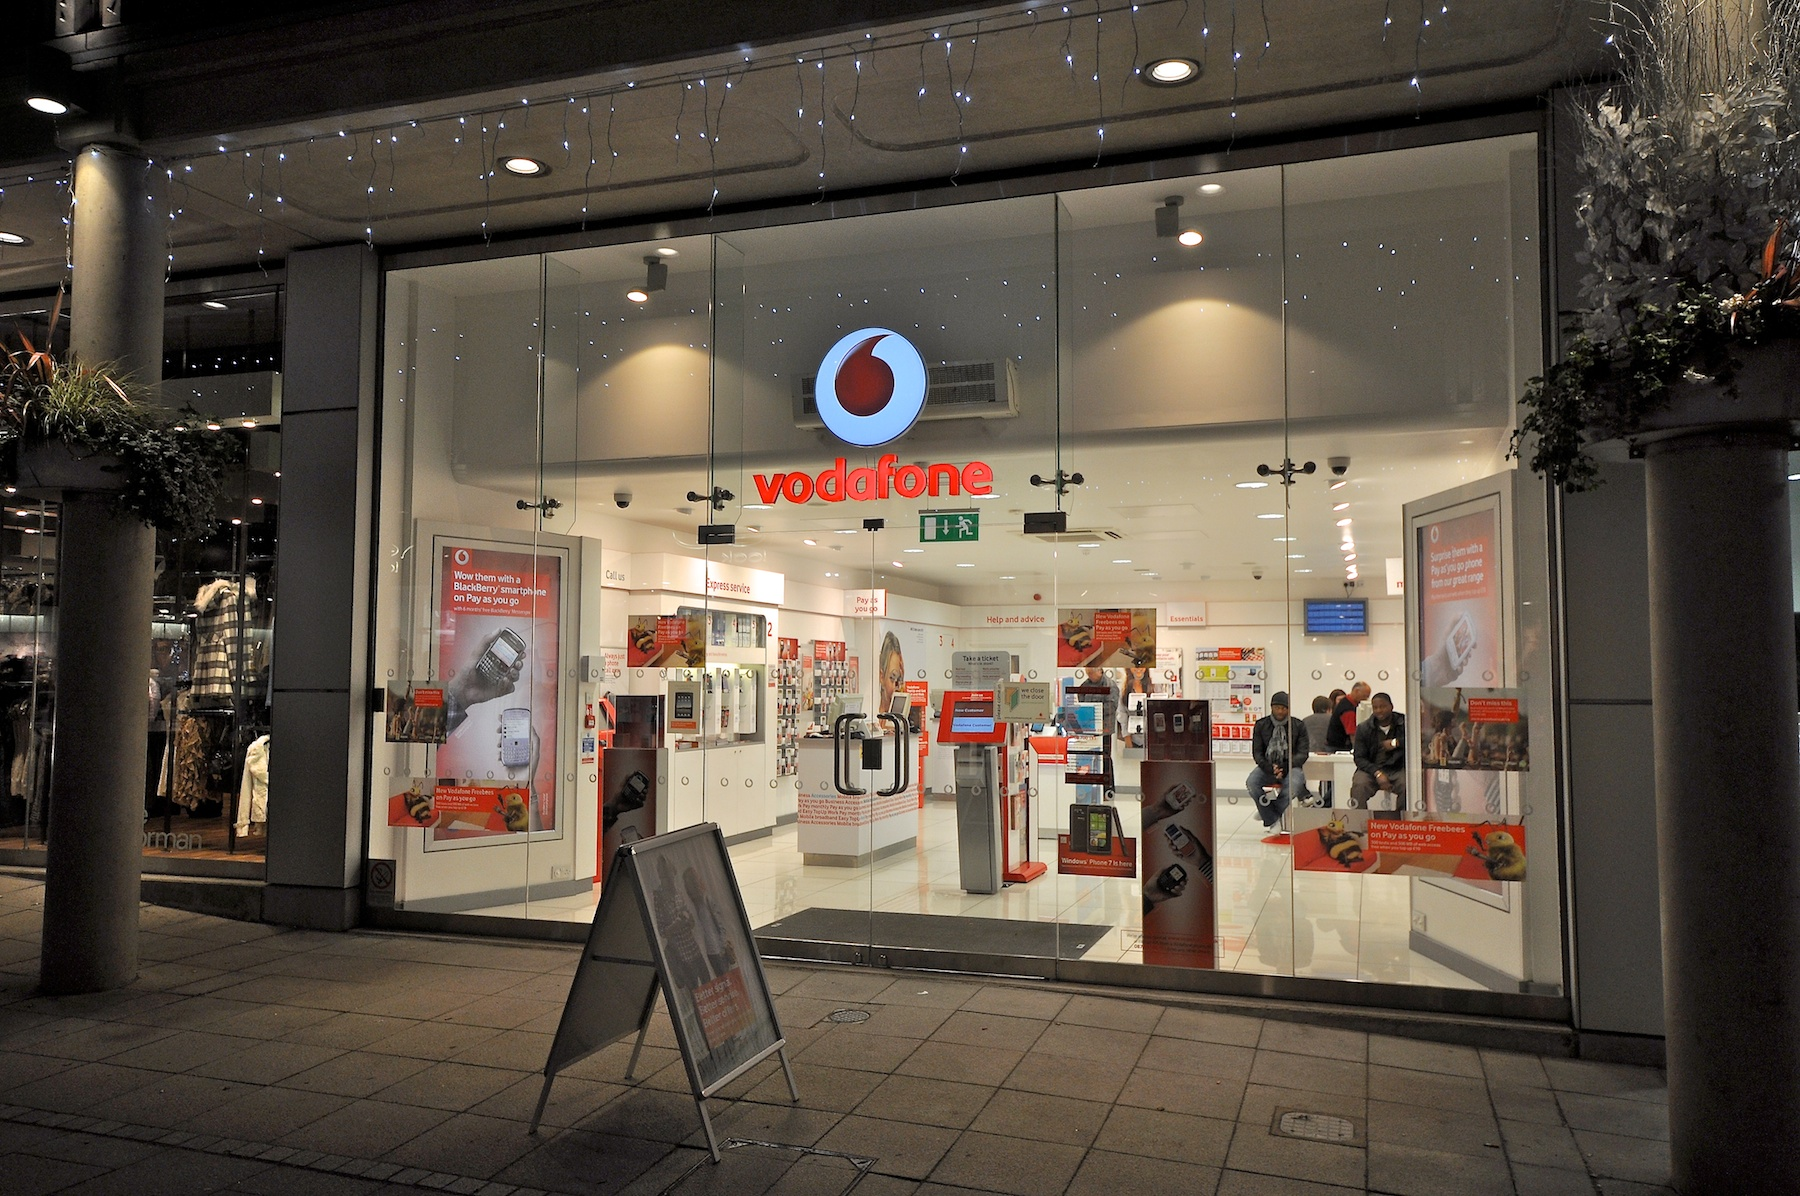 Description Vodafone Shop Christmas lights.jpg